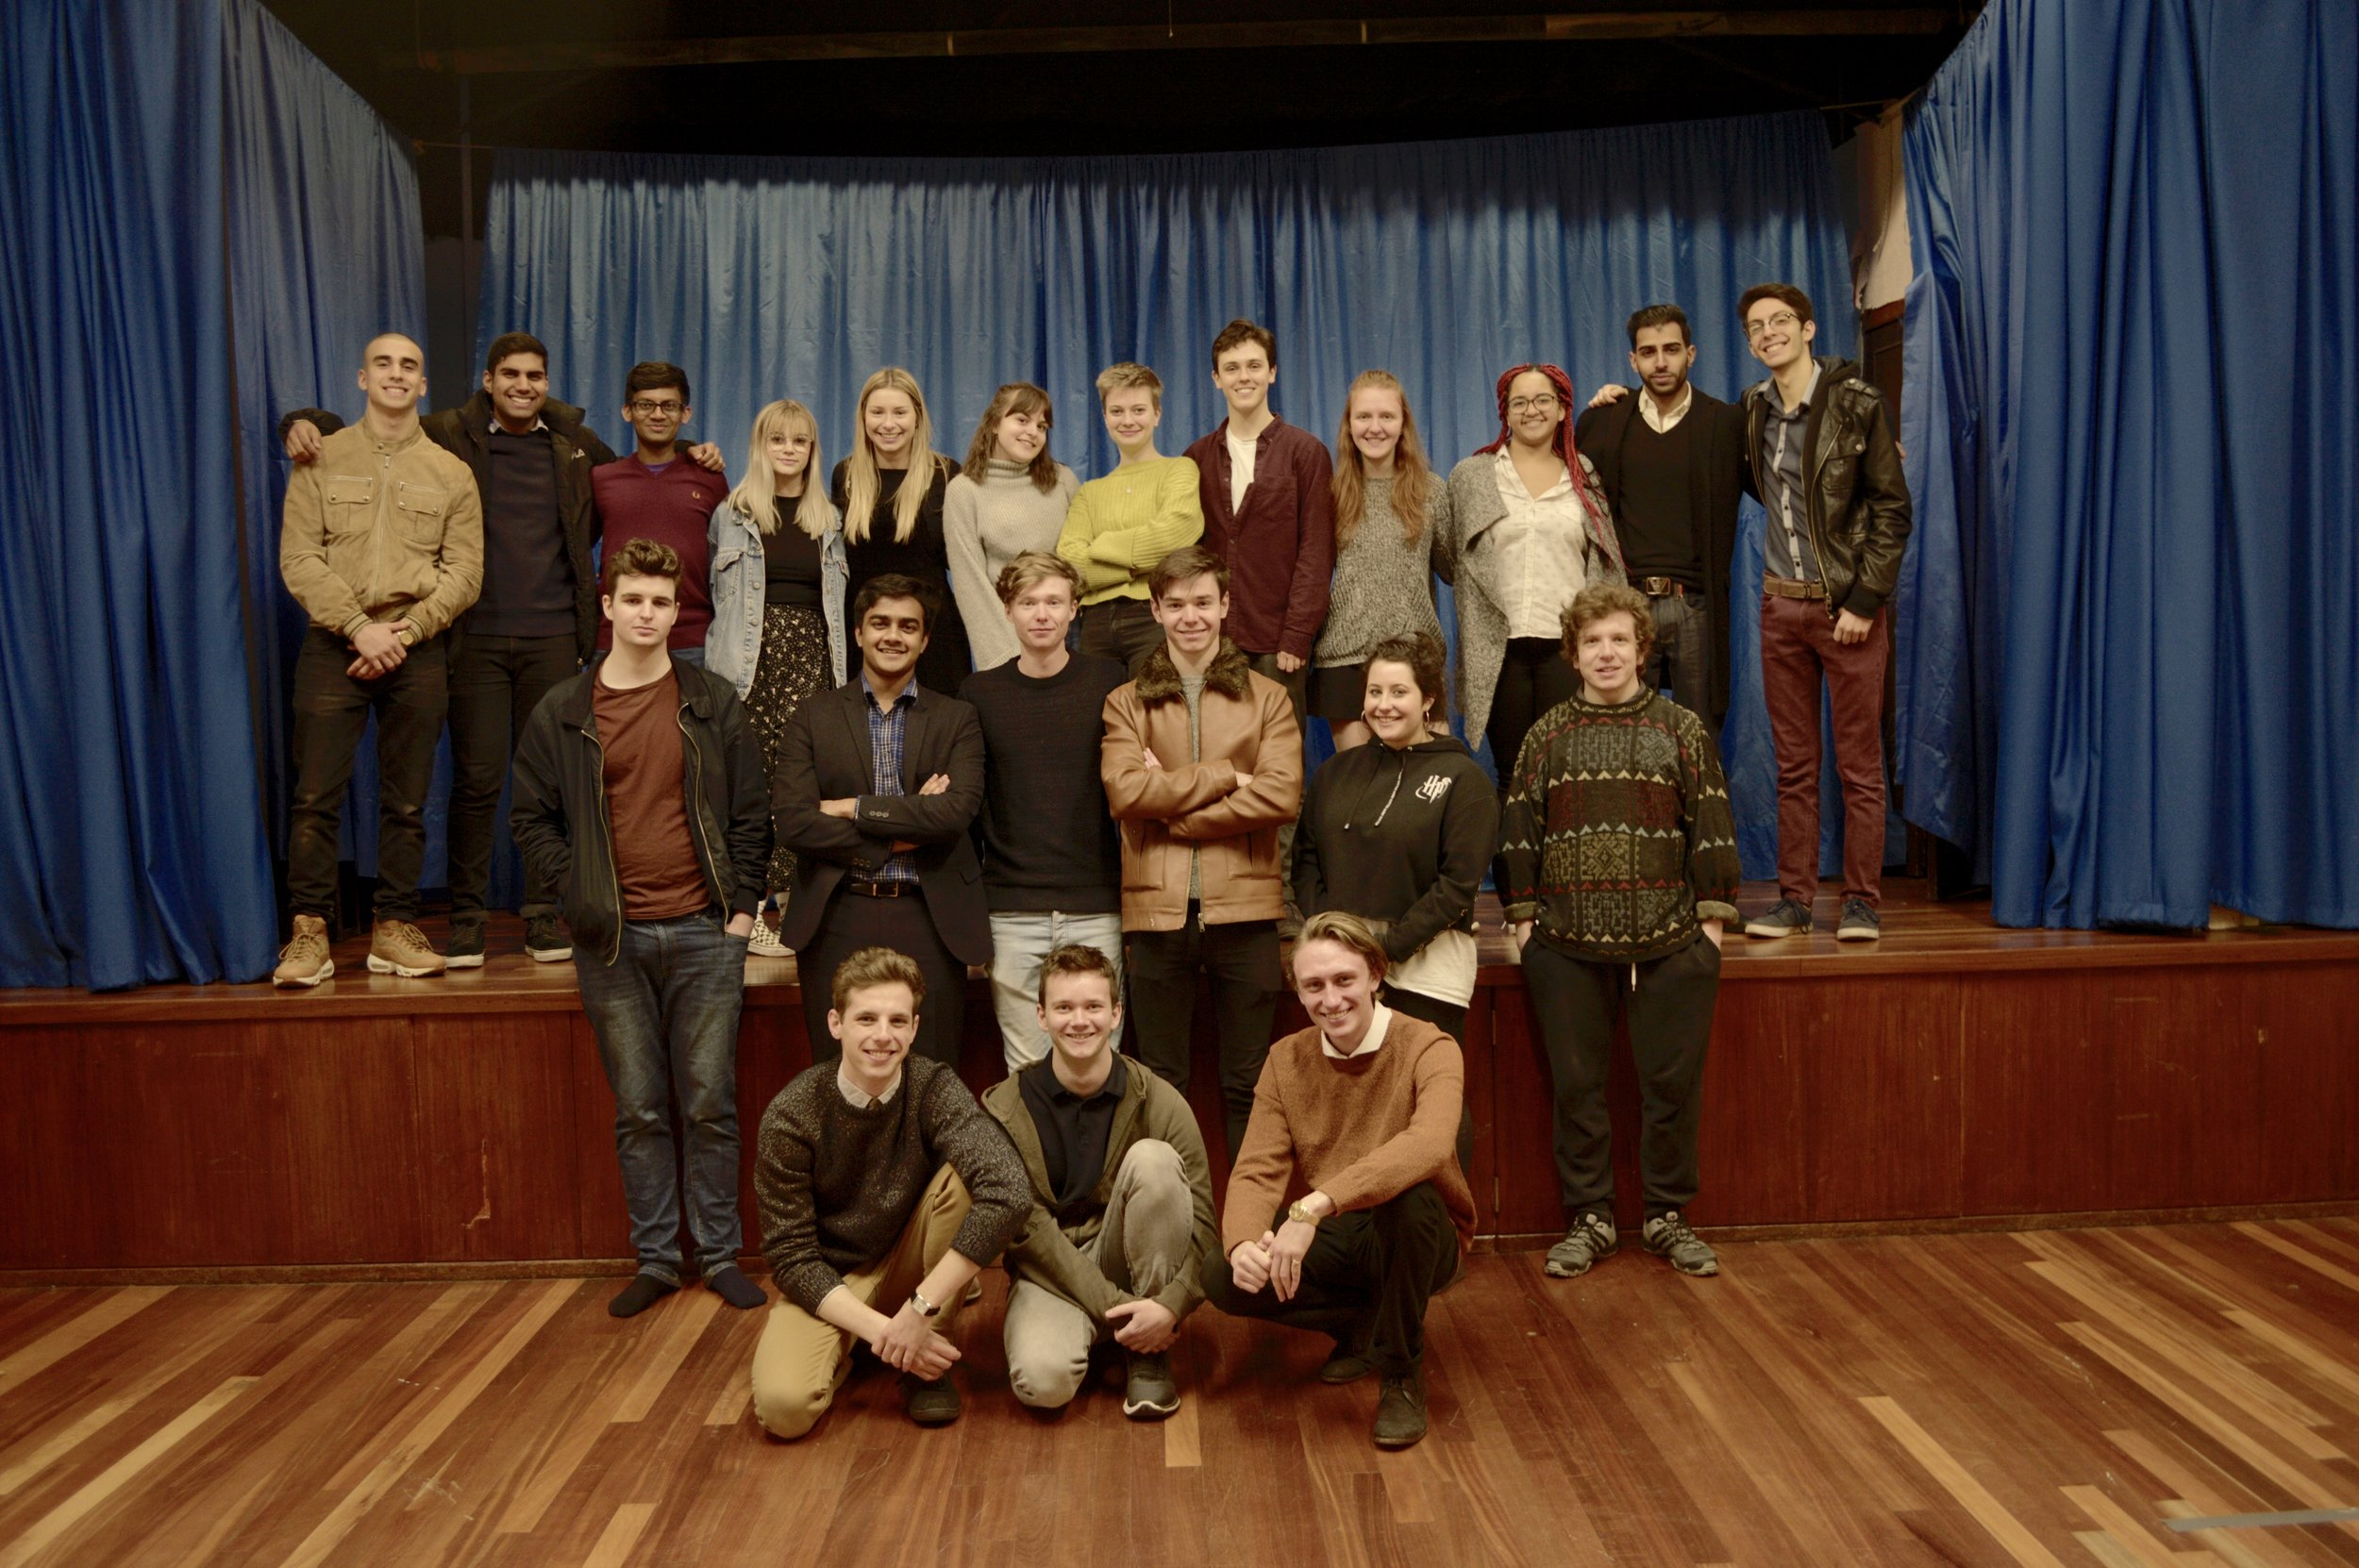 Some of the cast and crew involved in the making of the  Ollie  film, at Pinner Methodist Church.